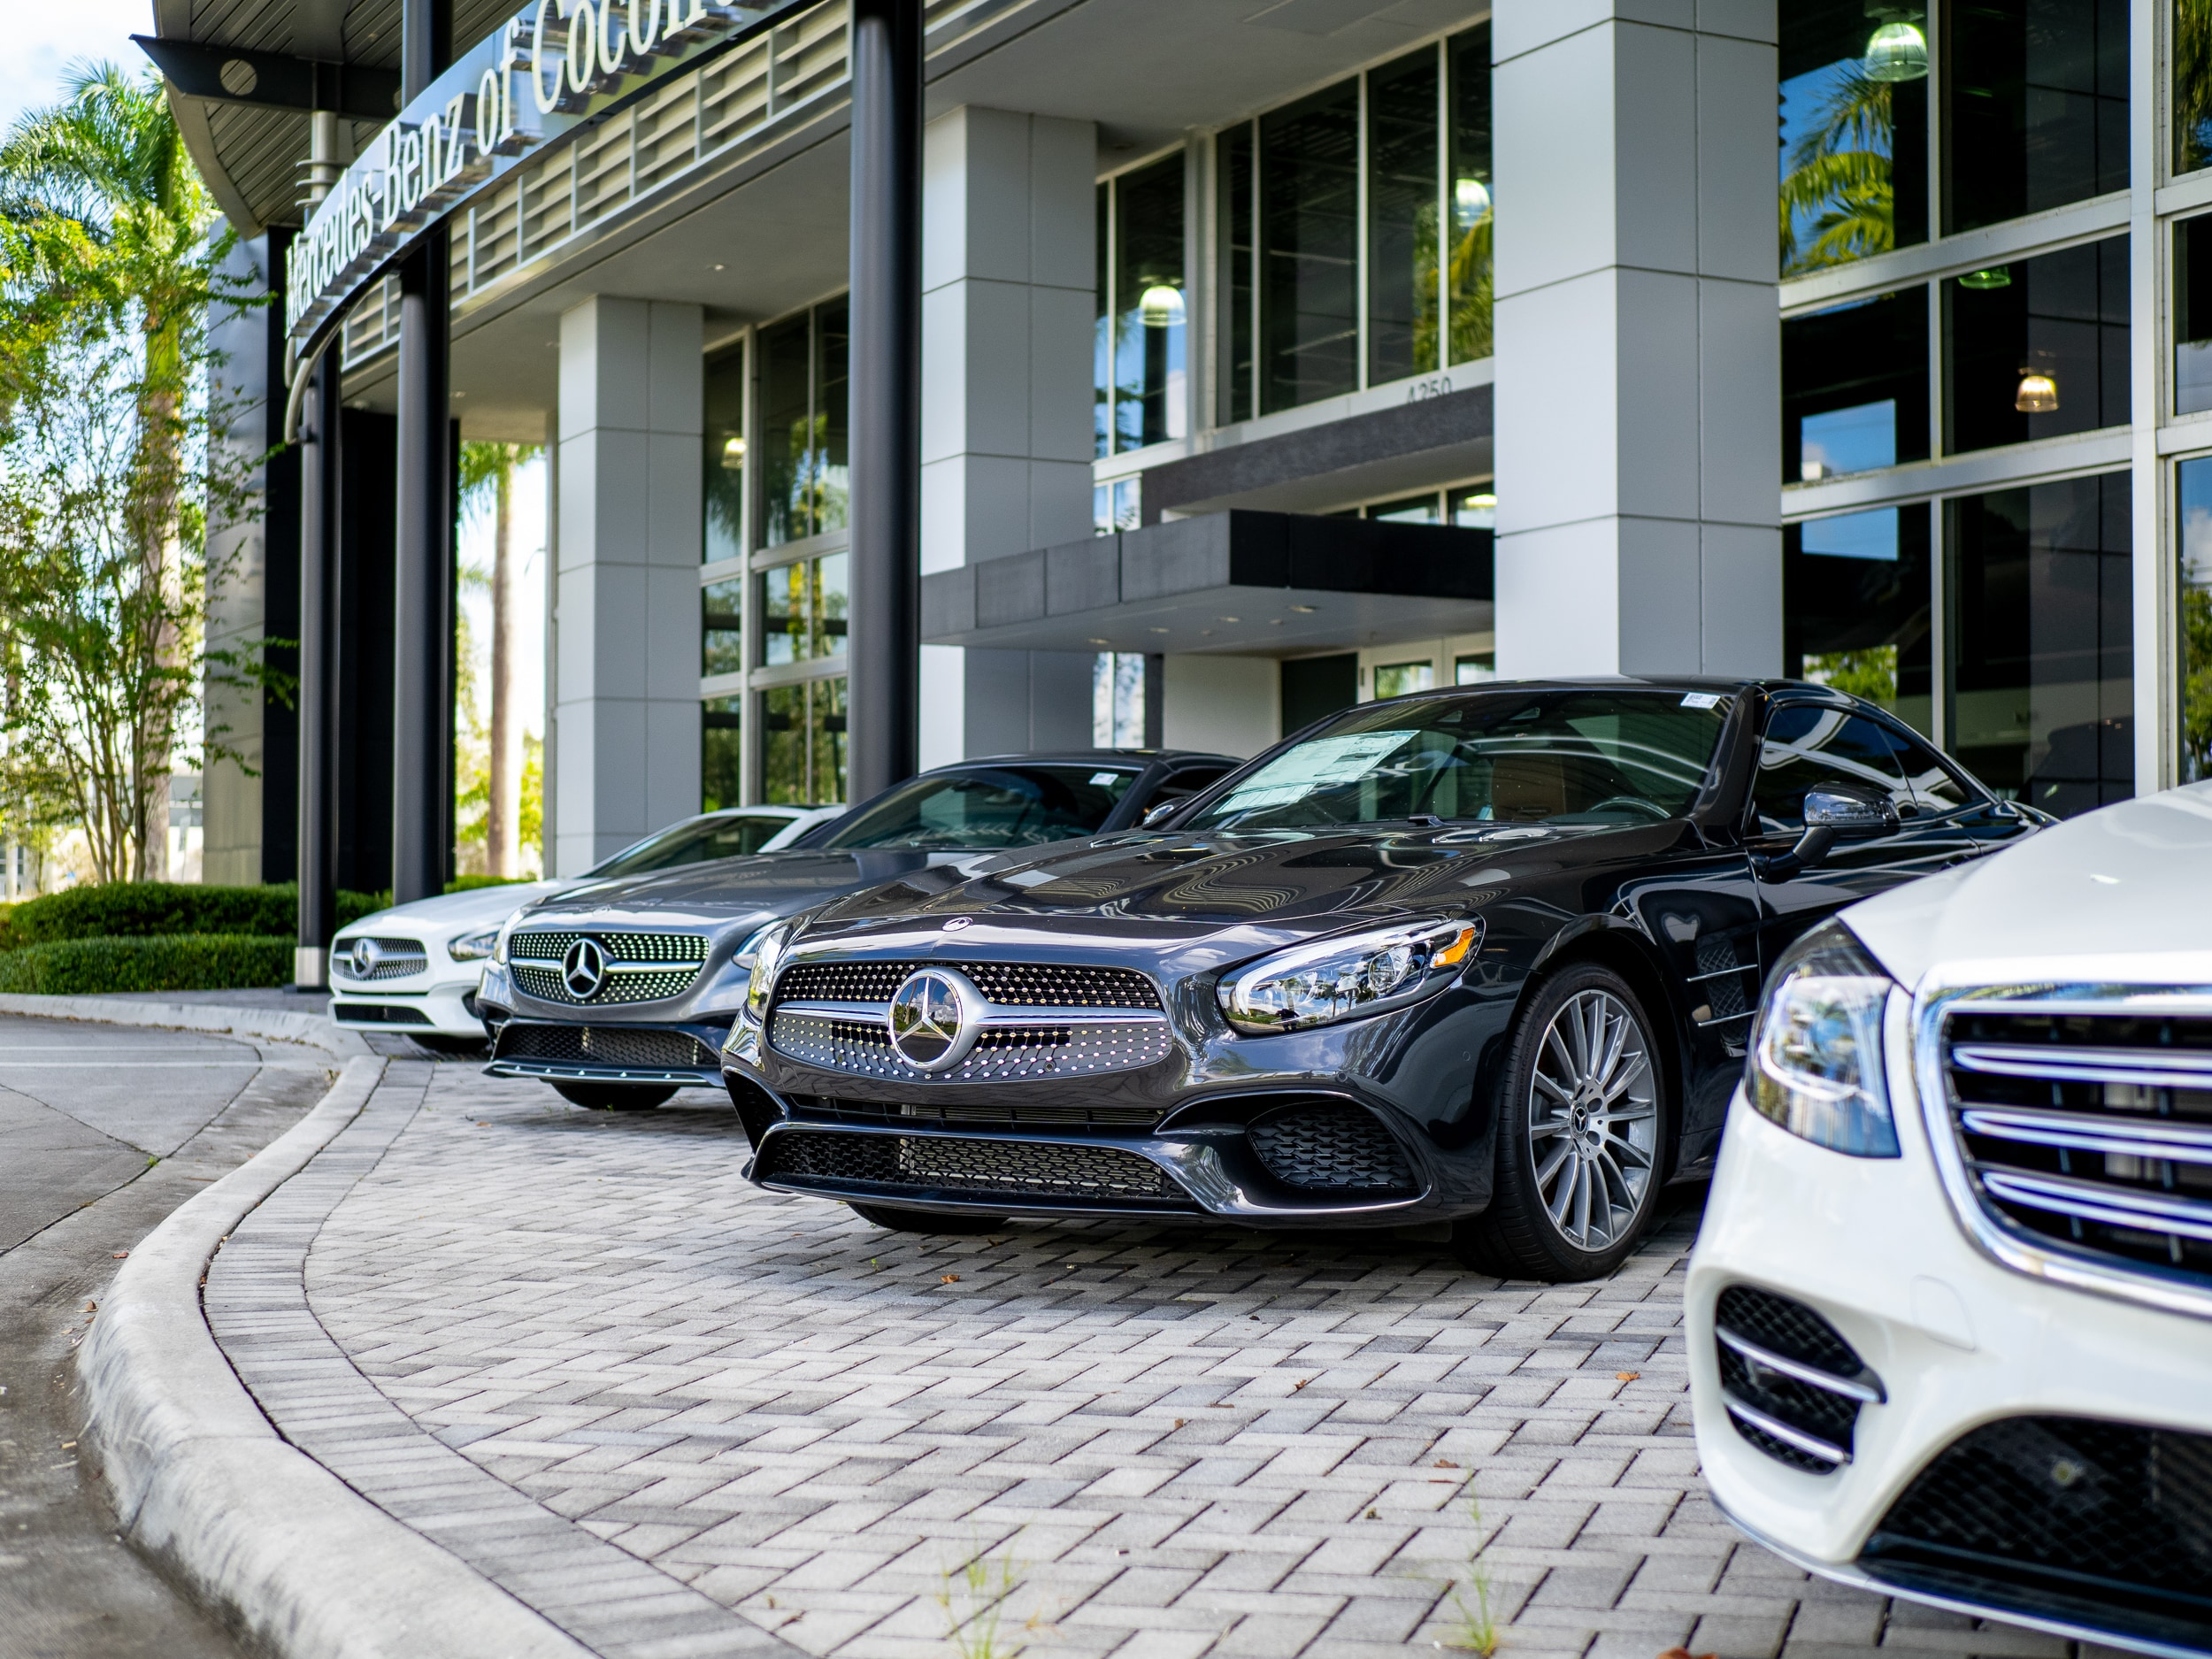 Get directions to Mercedes-Benz of Coconut Creek, a Mercedes-Benz dealership in Coconut Creek